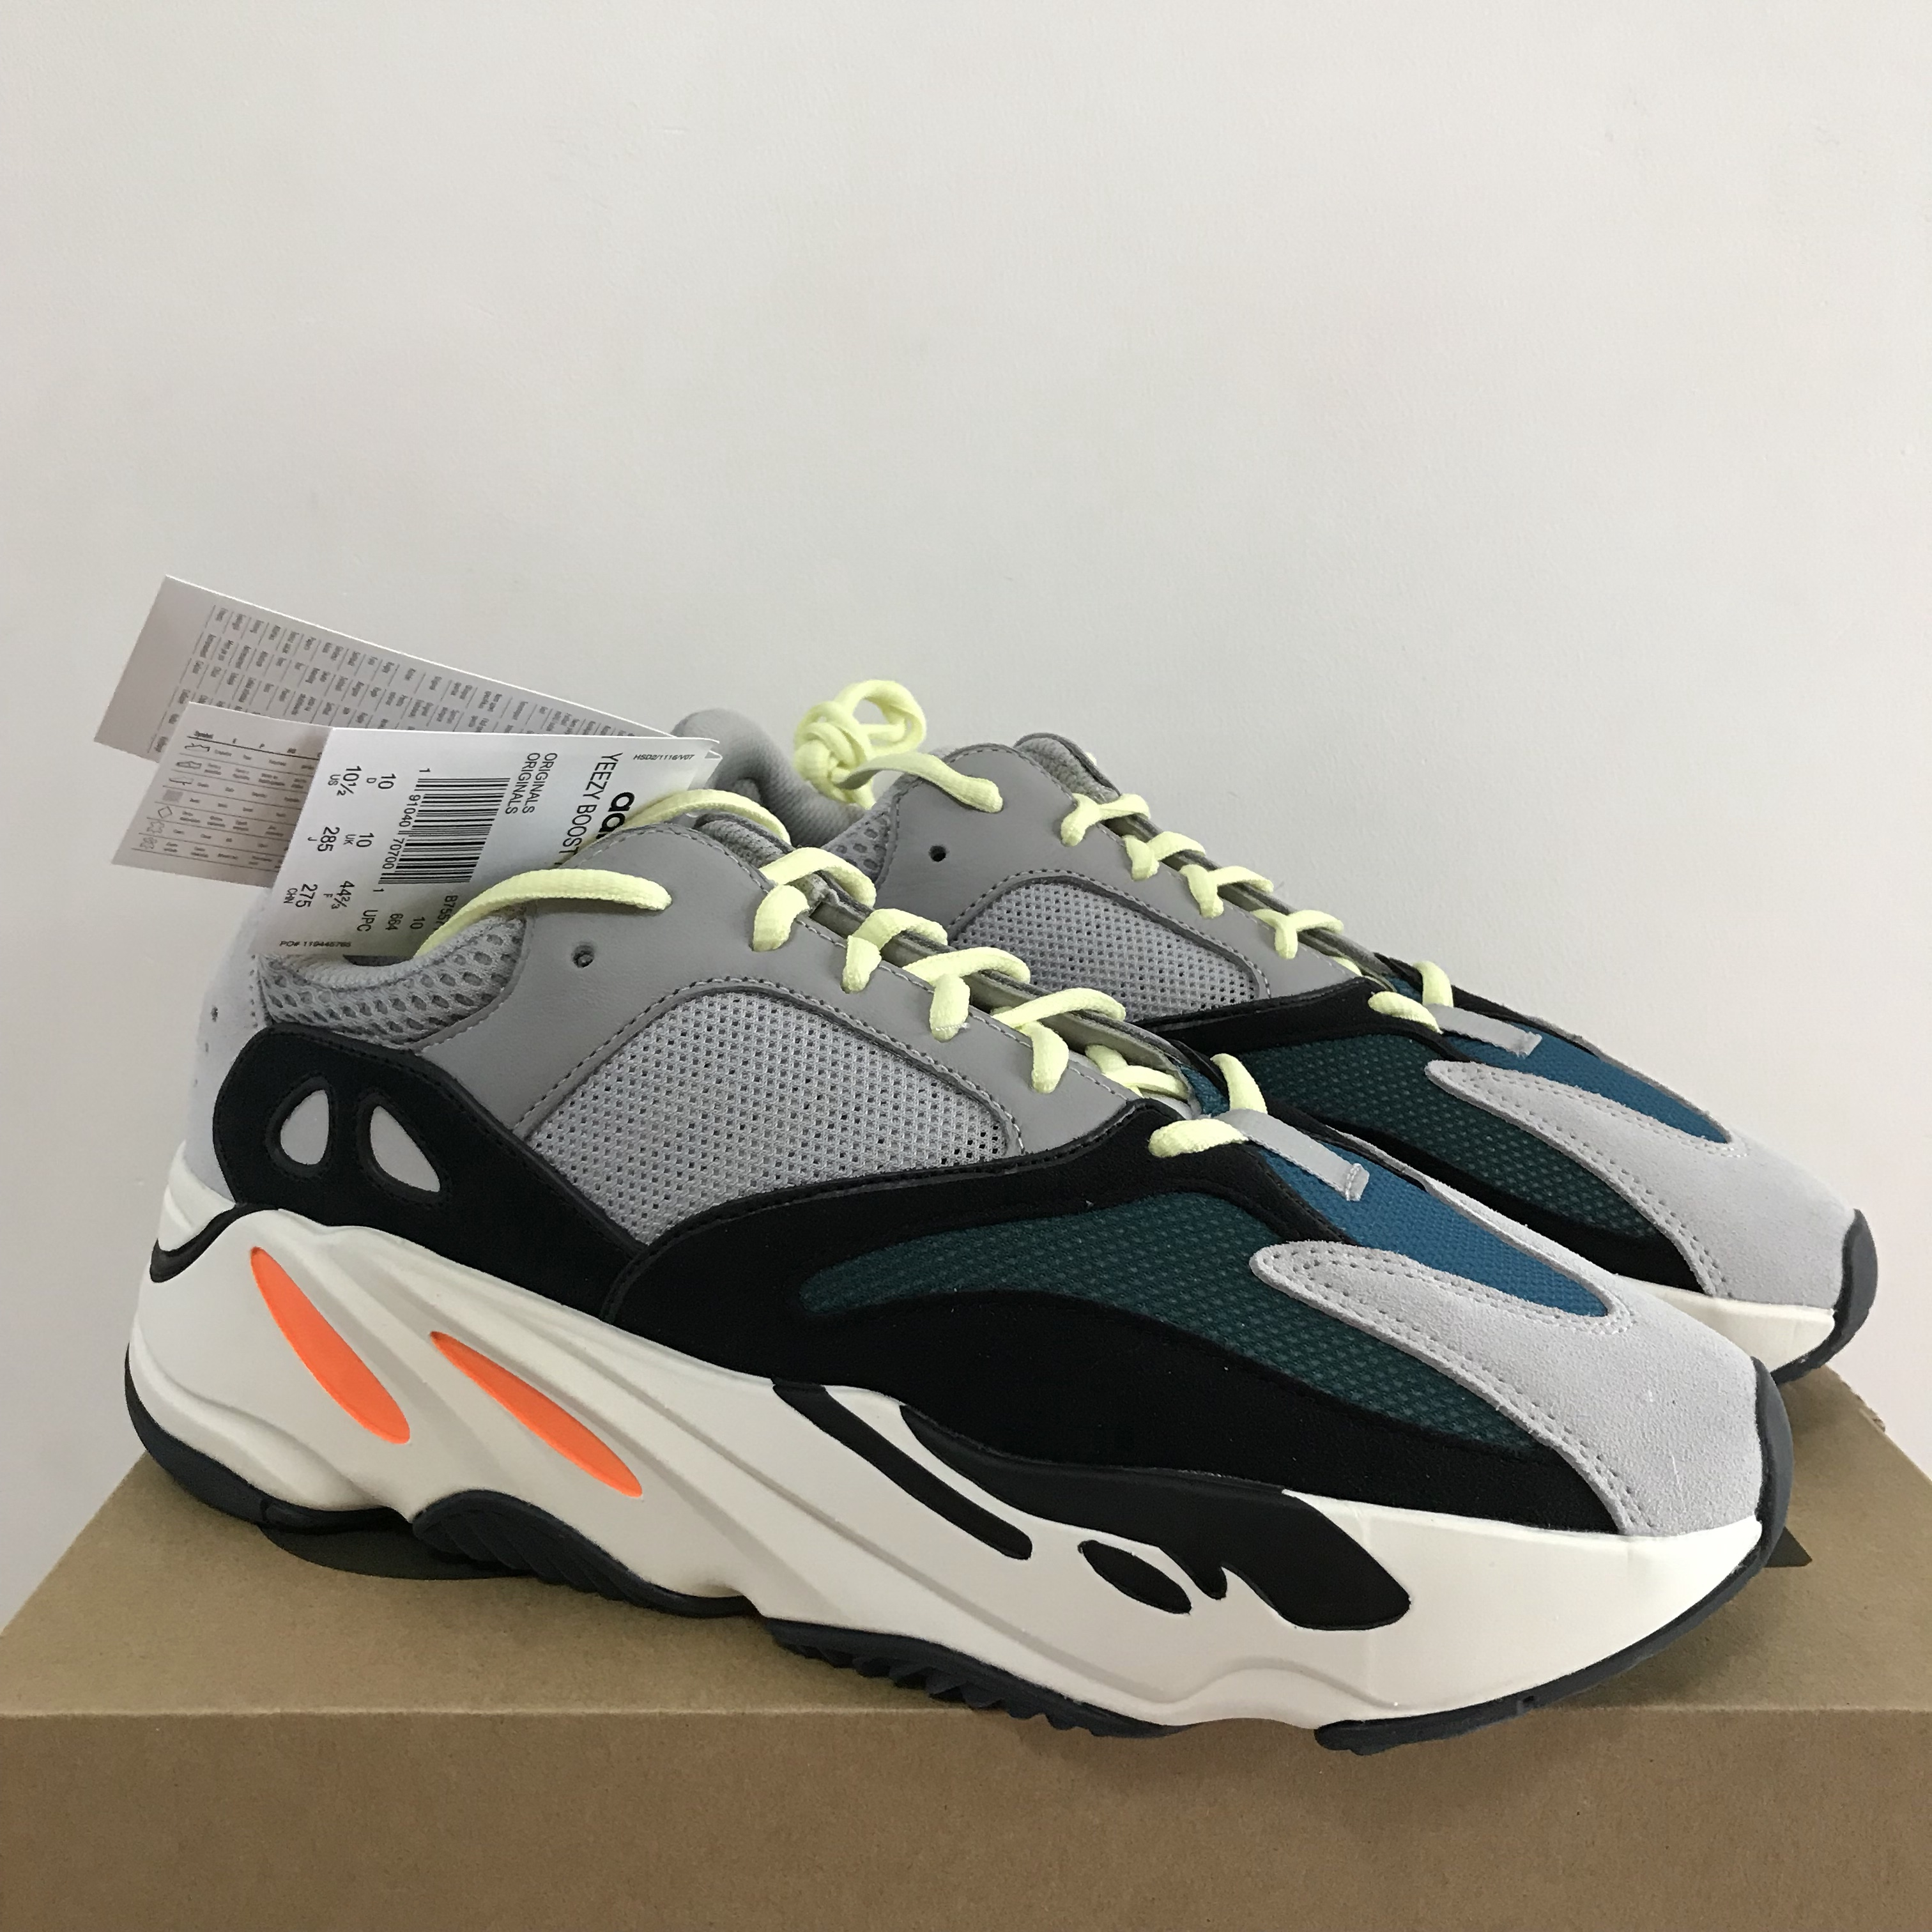 innovative design a7175 6d8d9 Adidas yeezy 700 boost, made in China, ships from... - Depop